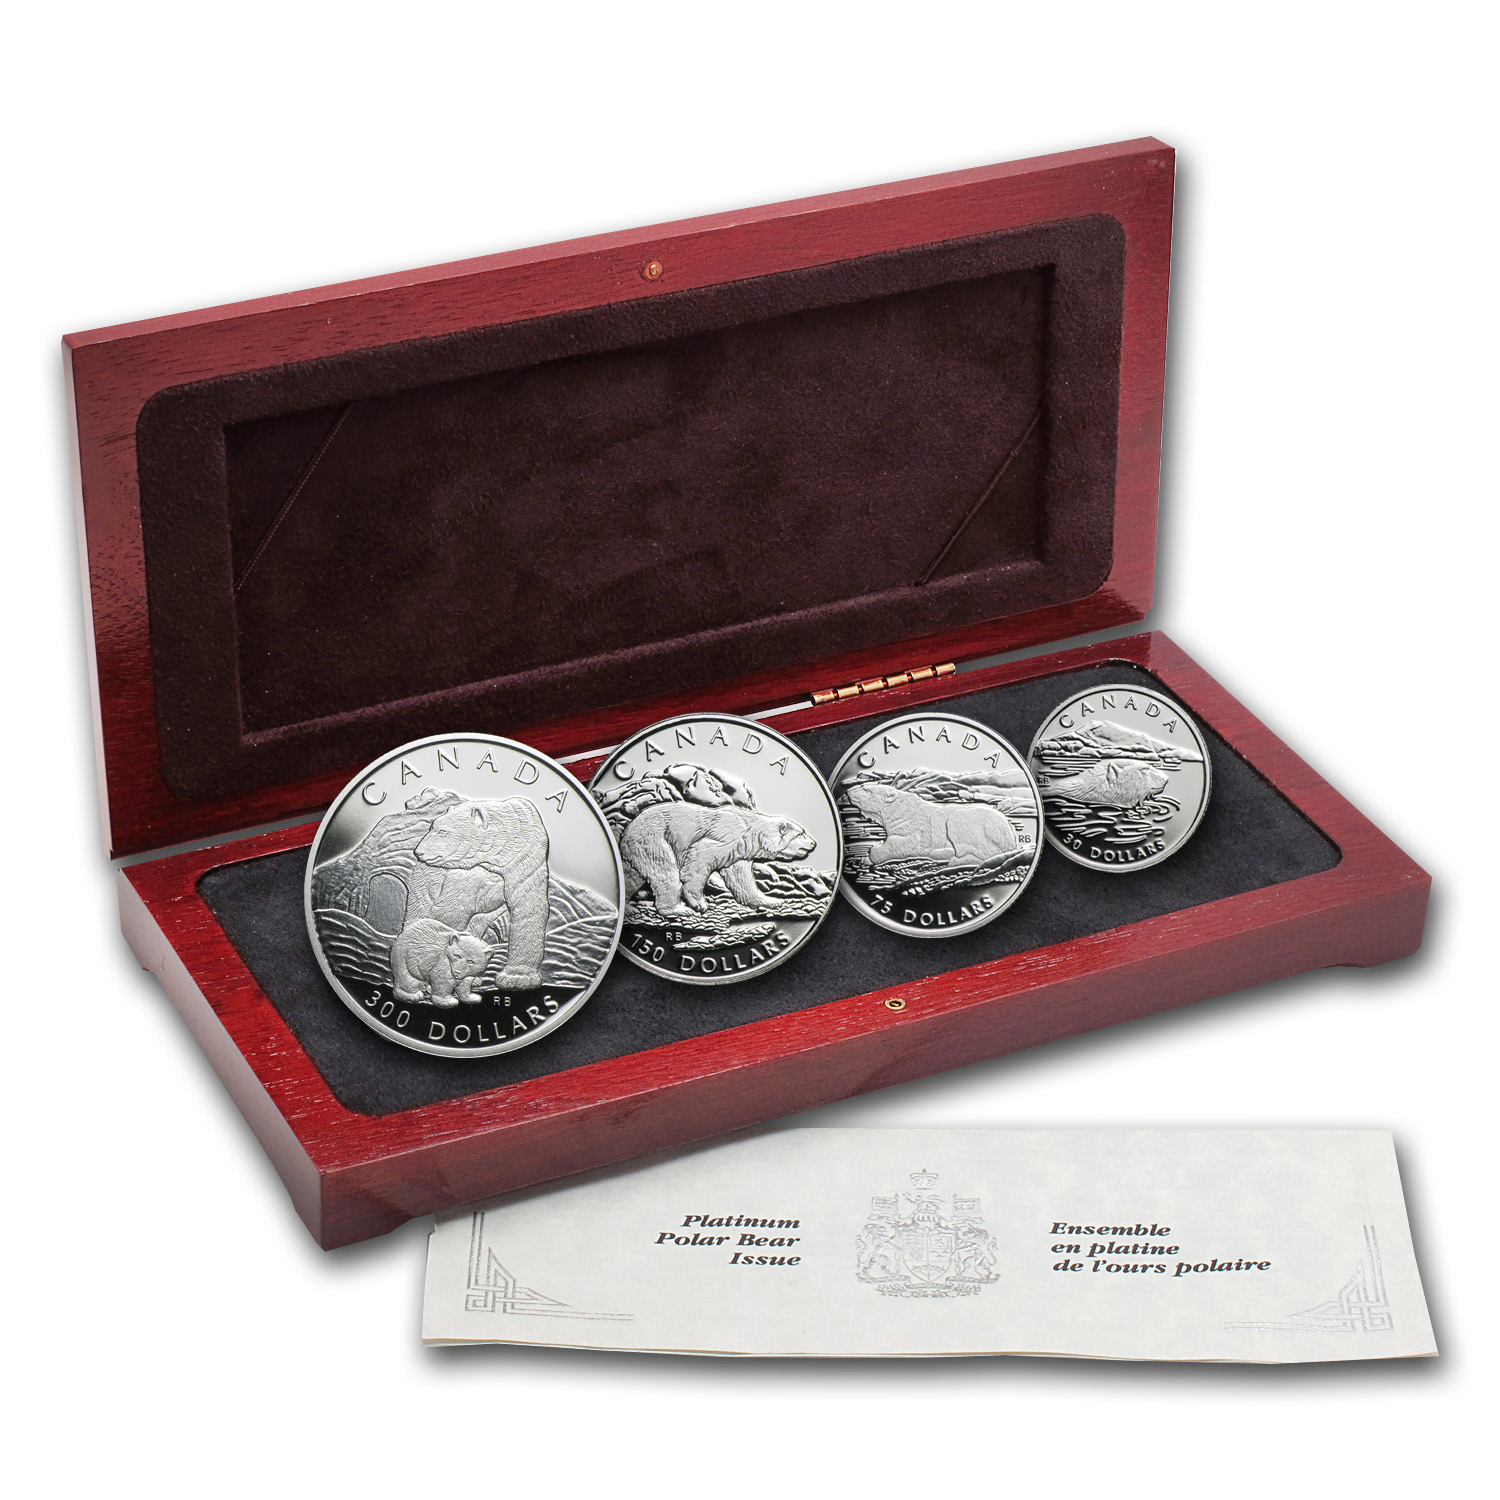 1990 Canada 4-Coin Proof Platinum Polar Bear Set (w/Box & COA)